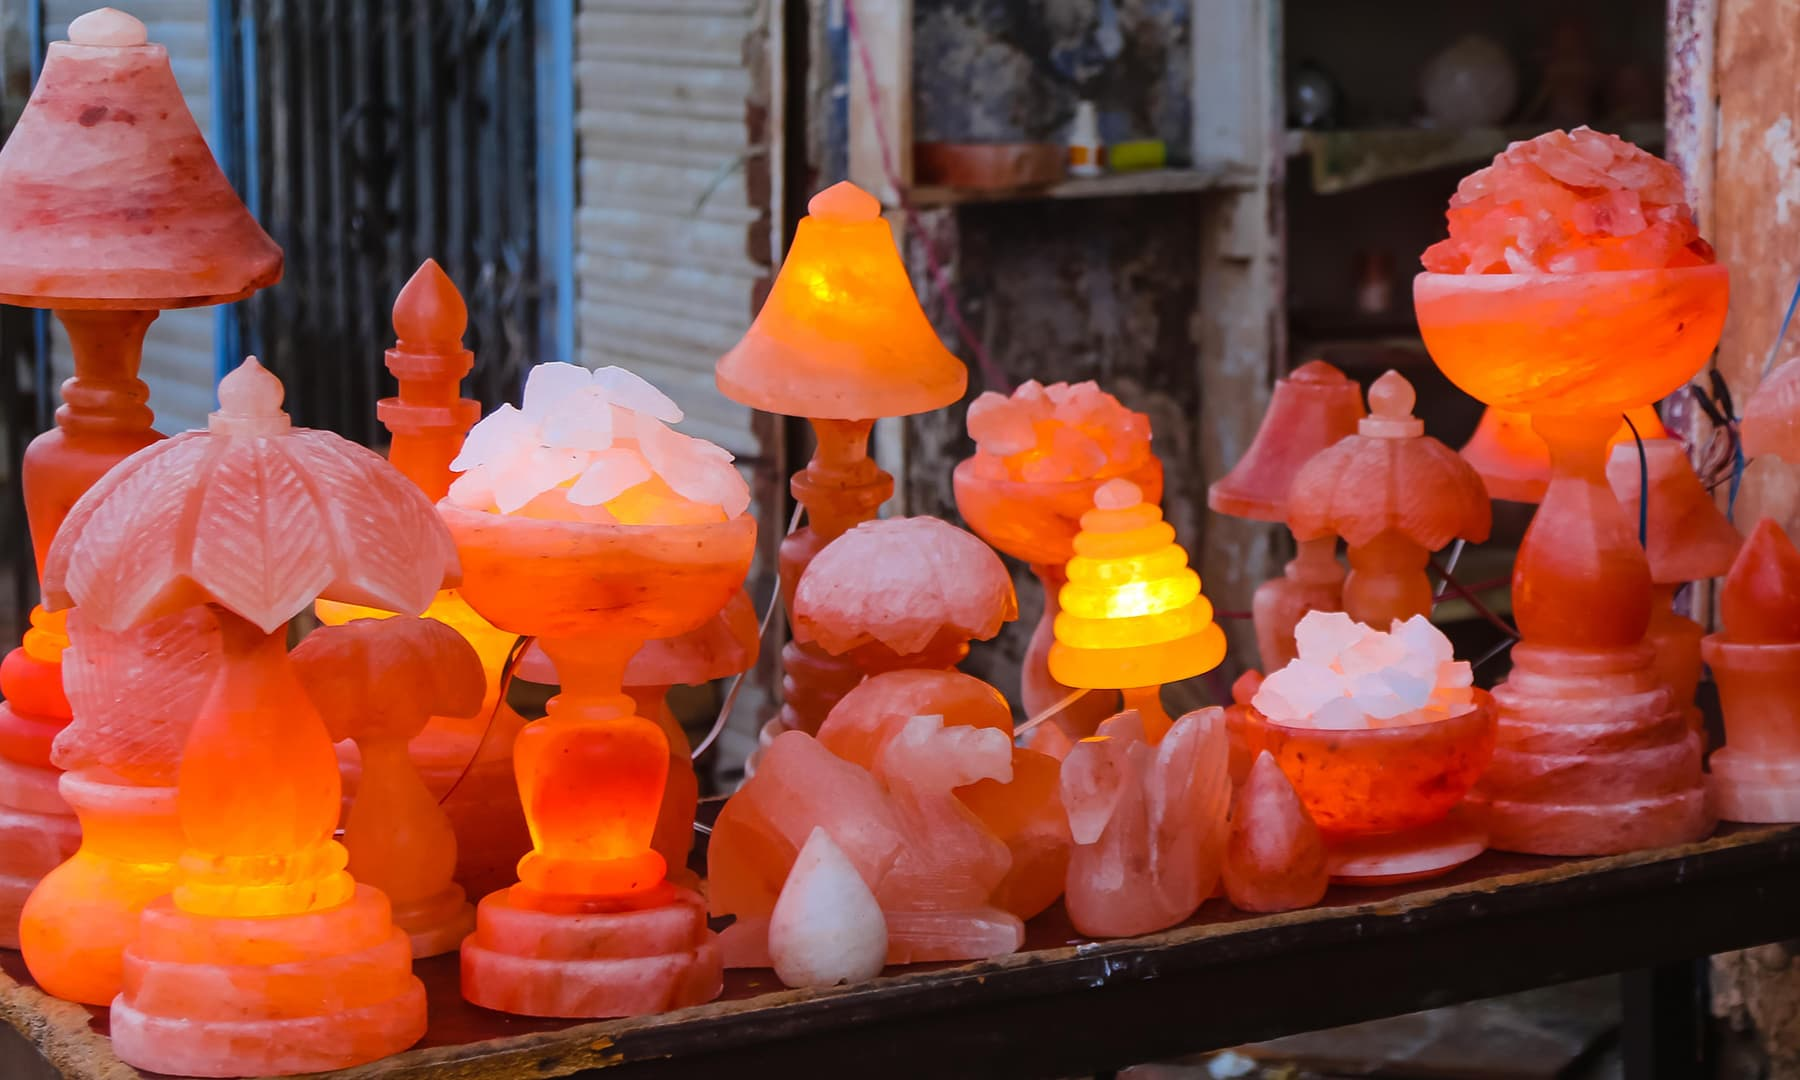 Close up of glowing souvenirs on display for sale.